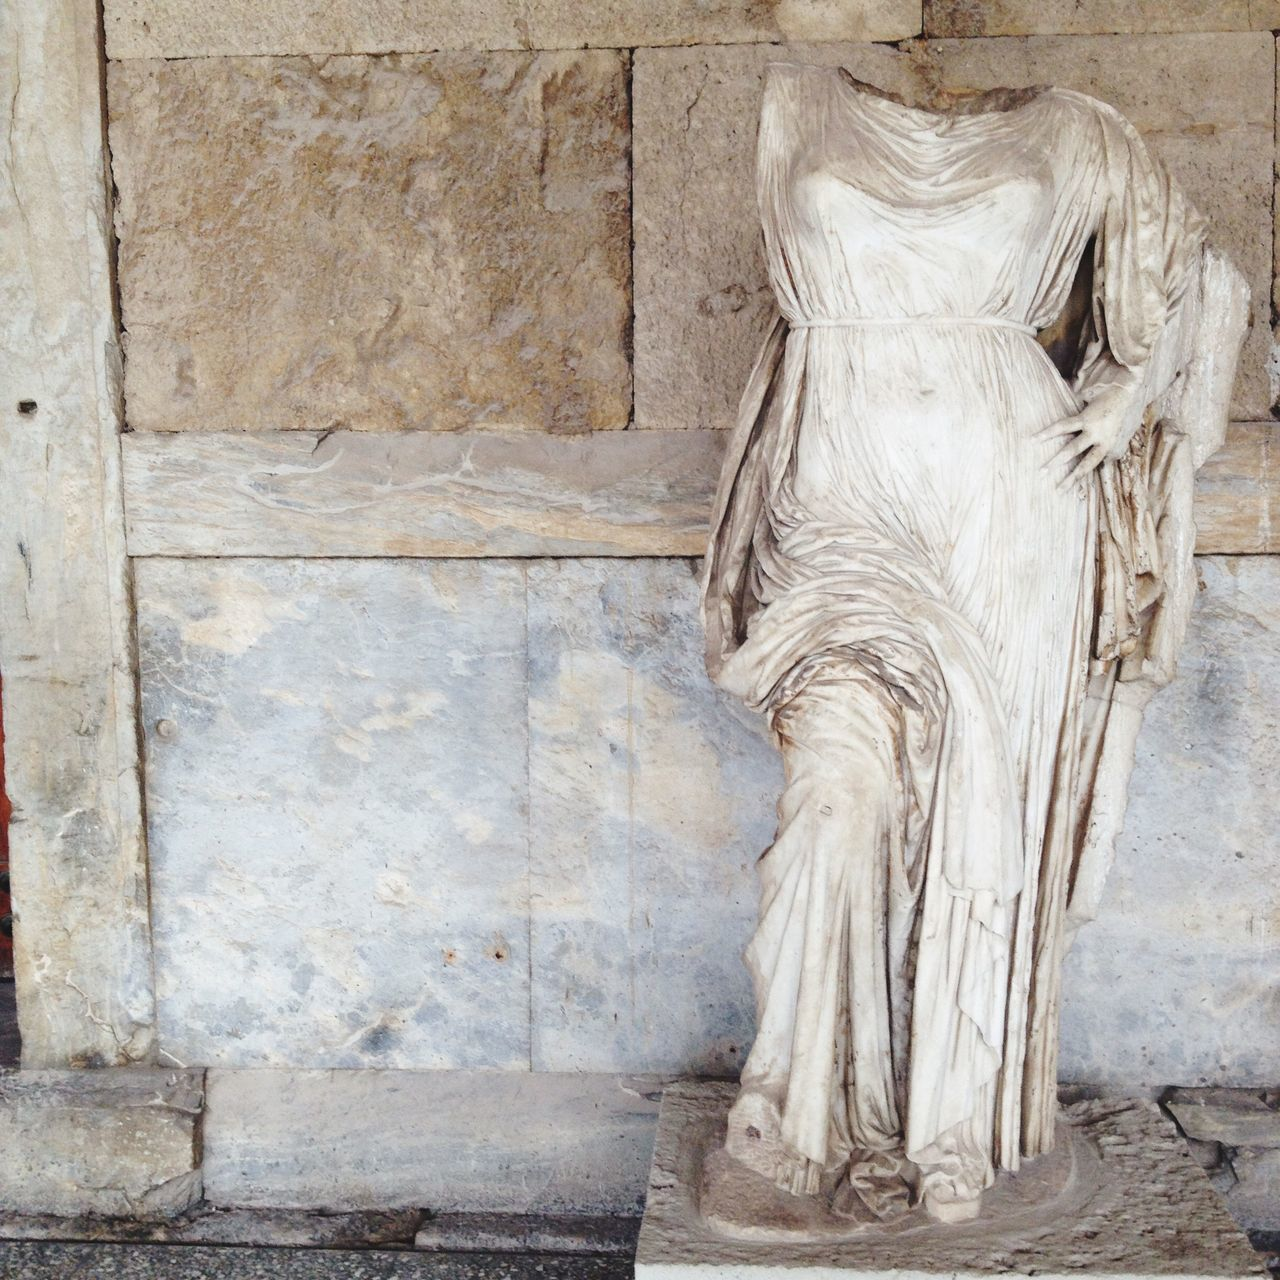 stone material, marble, architecture, built structure, statue, sculpture, no people, indoors, building exterior, day, close-up